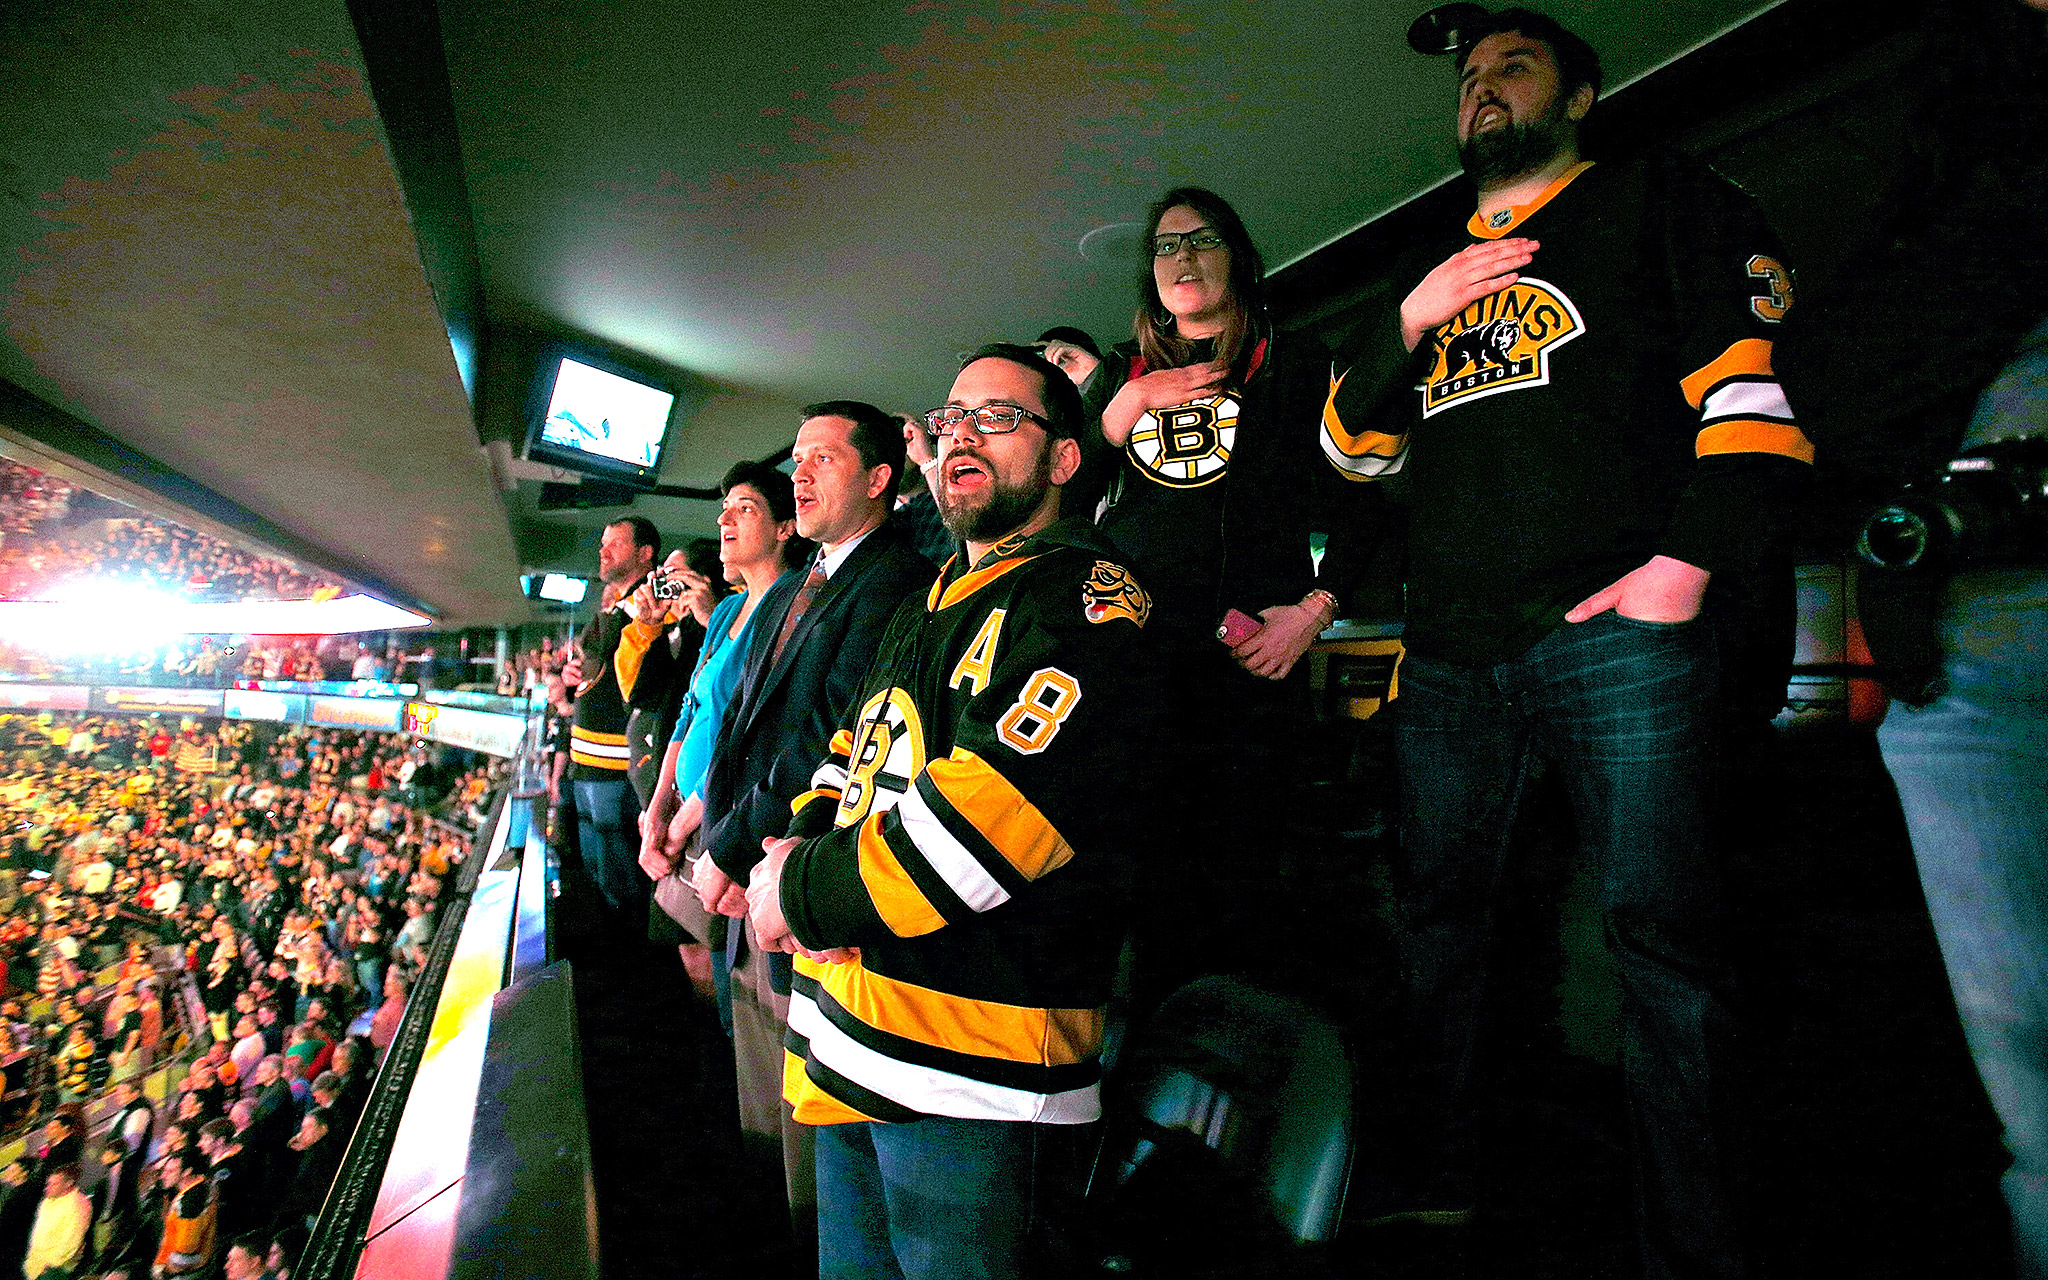 Bruins game fan photos Welcome to the Bruin Zone - UCLA Sports